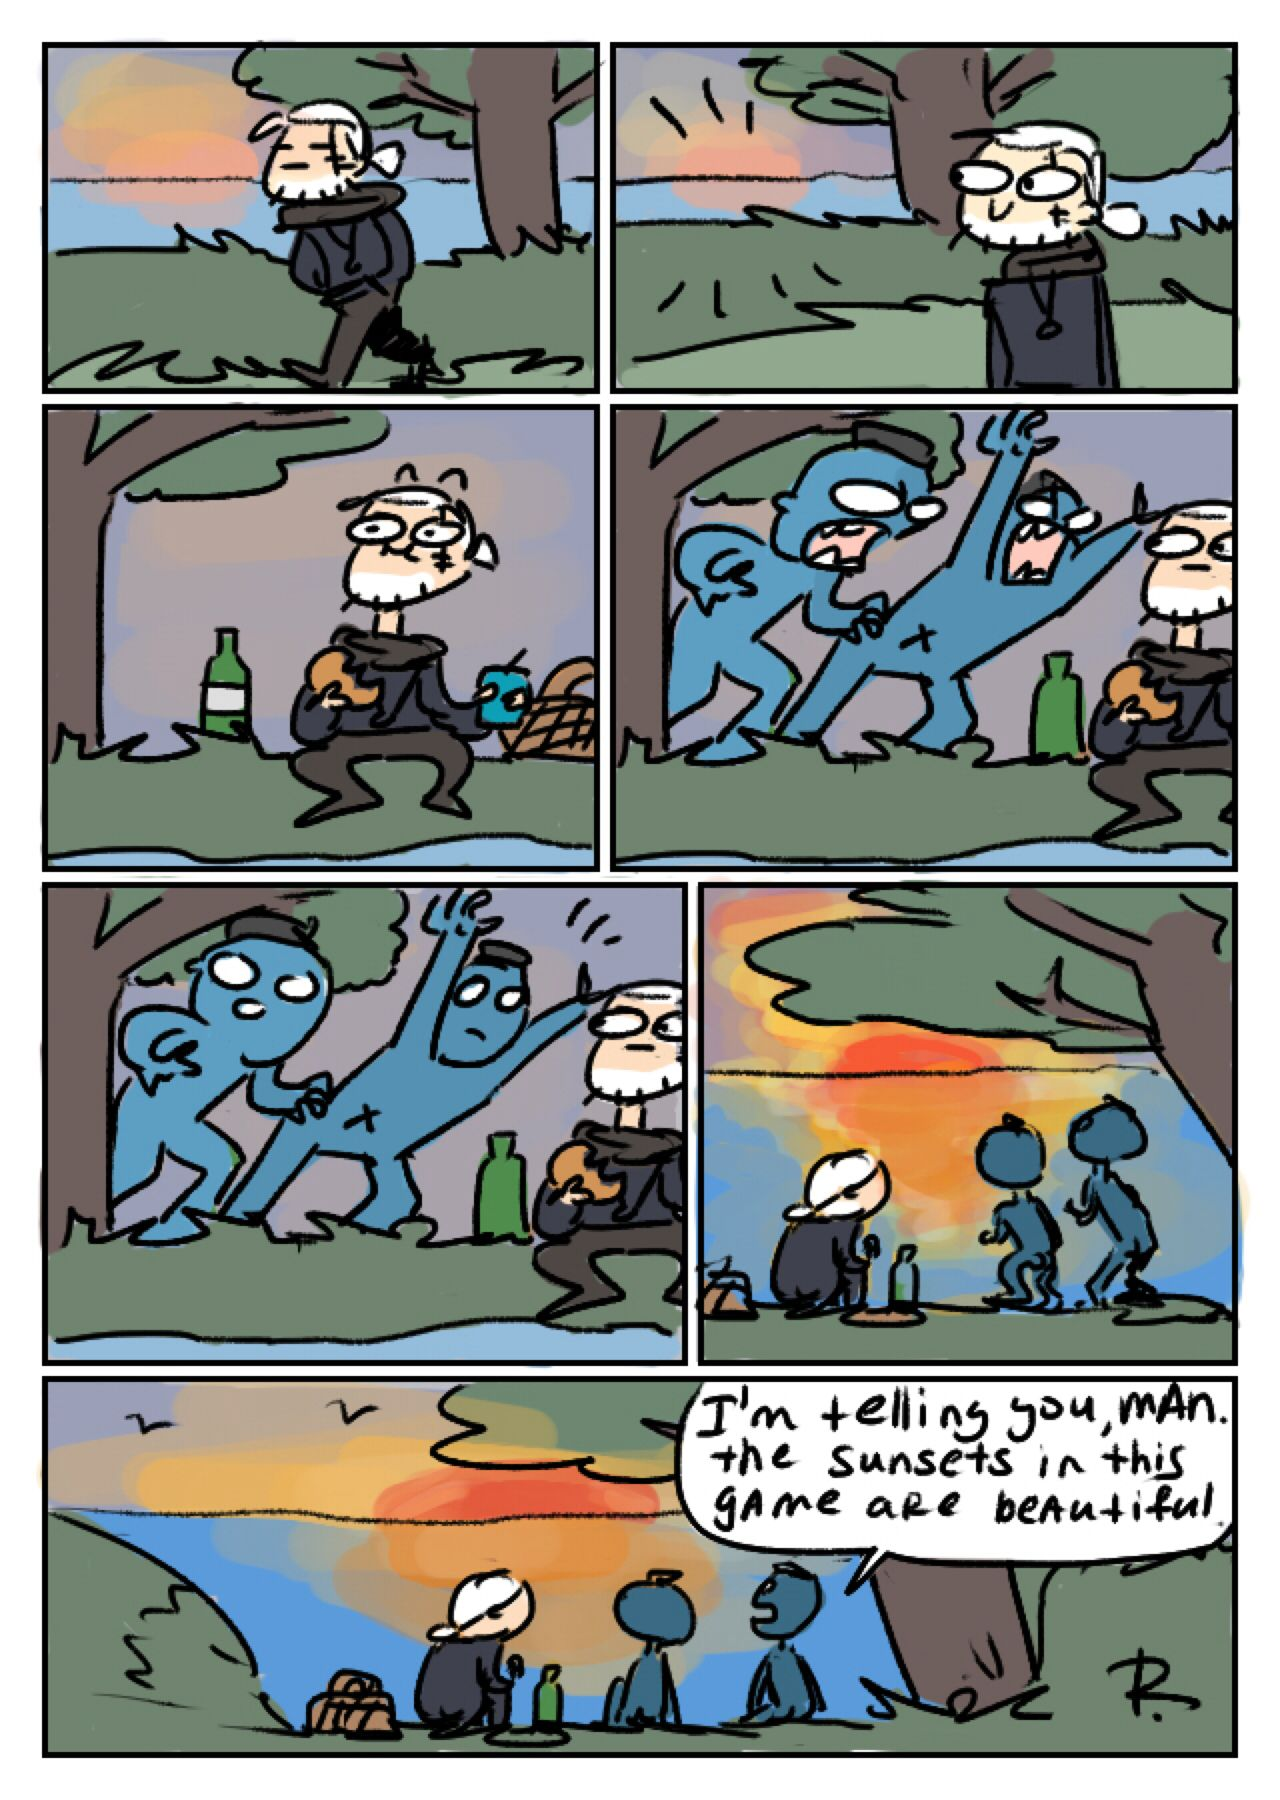 The witcher 3 doodles 219 by ayej on deviantart im a gamer the witcher 3 doodles 219 by ayej on deviantart solutioingenieria Gallery